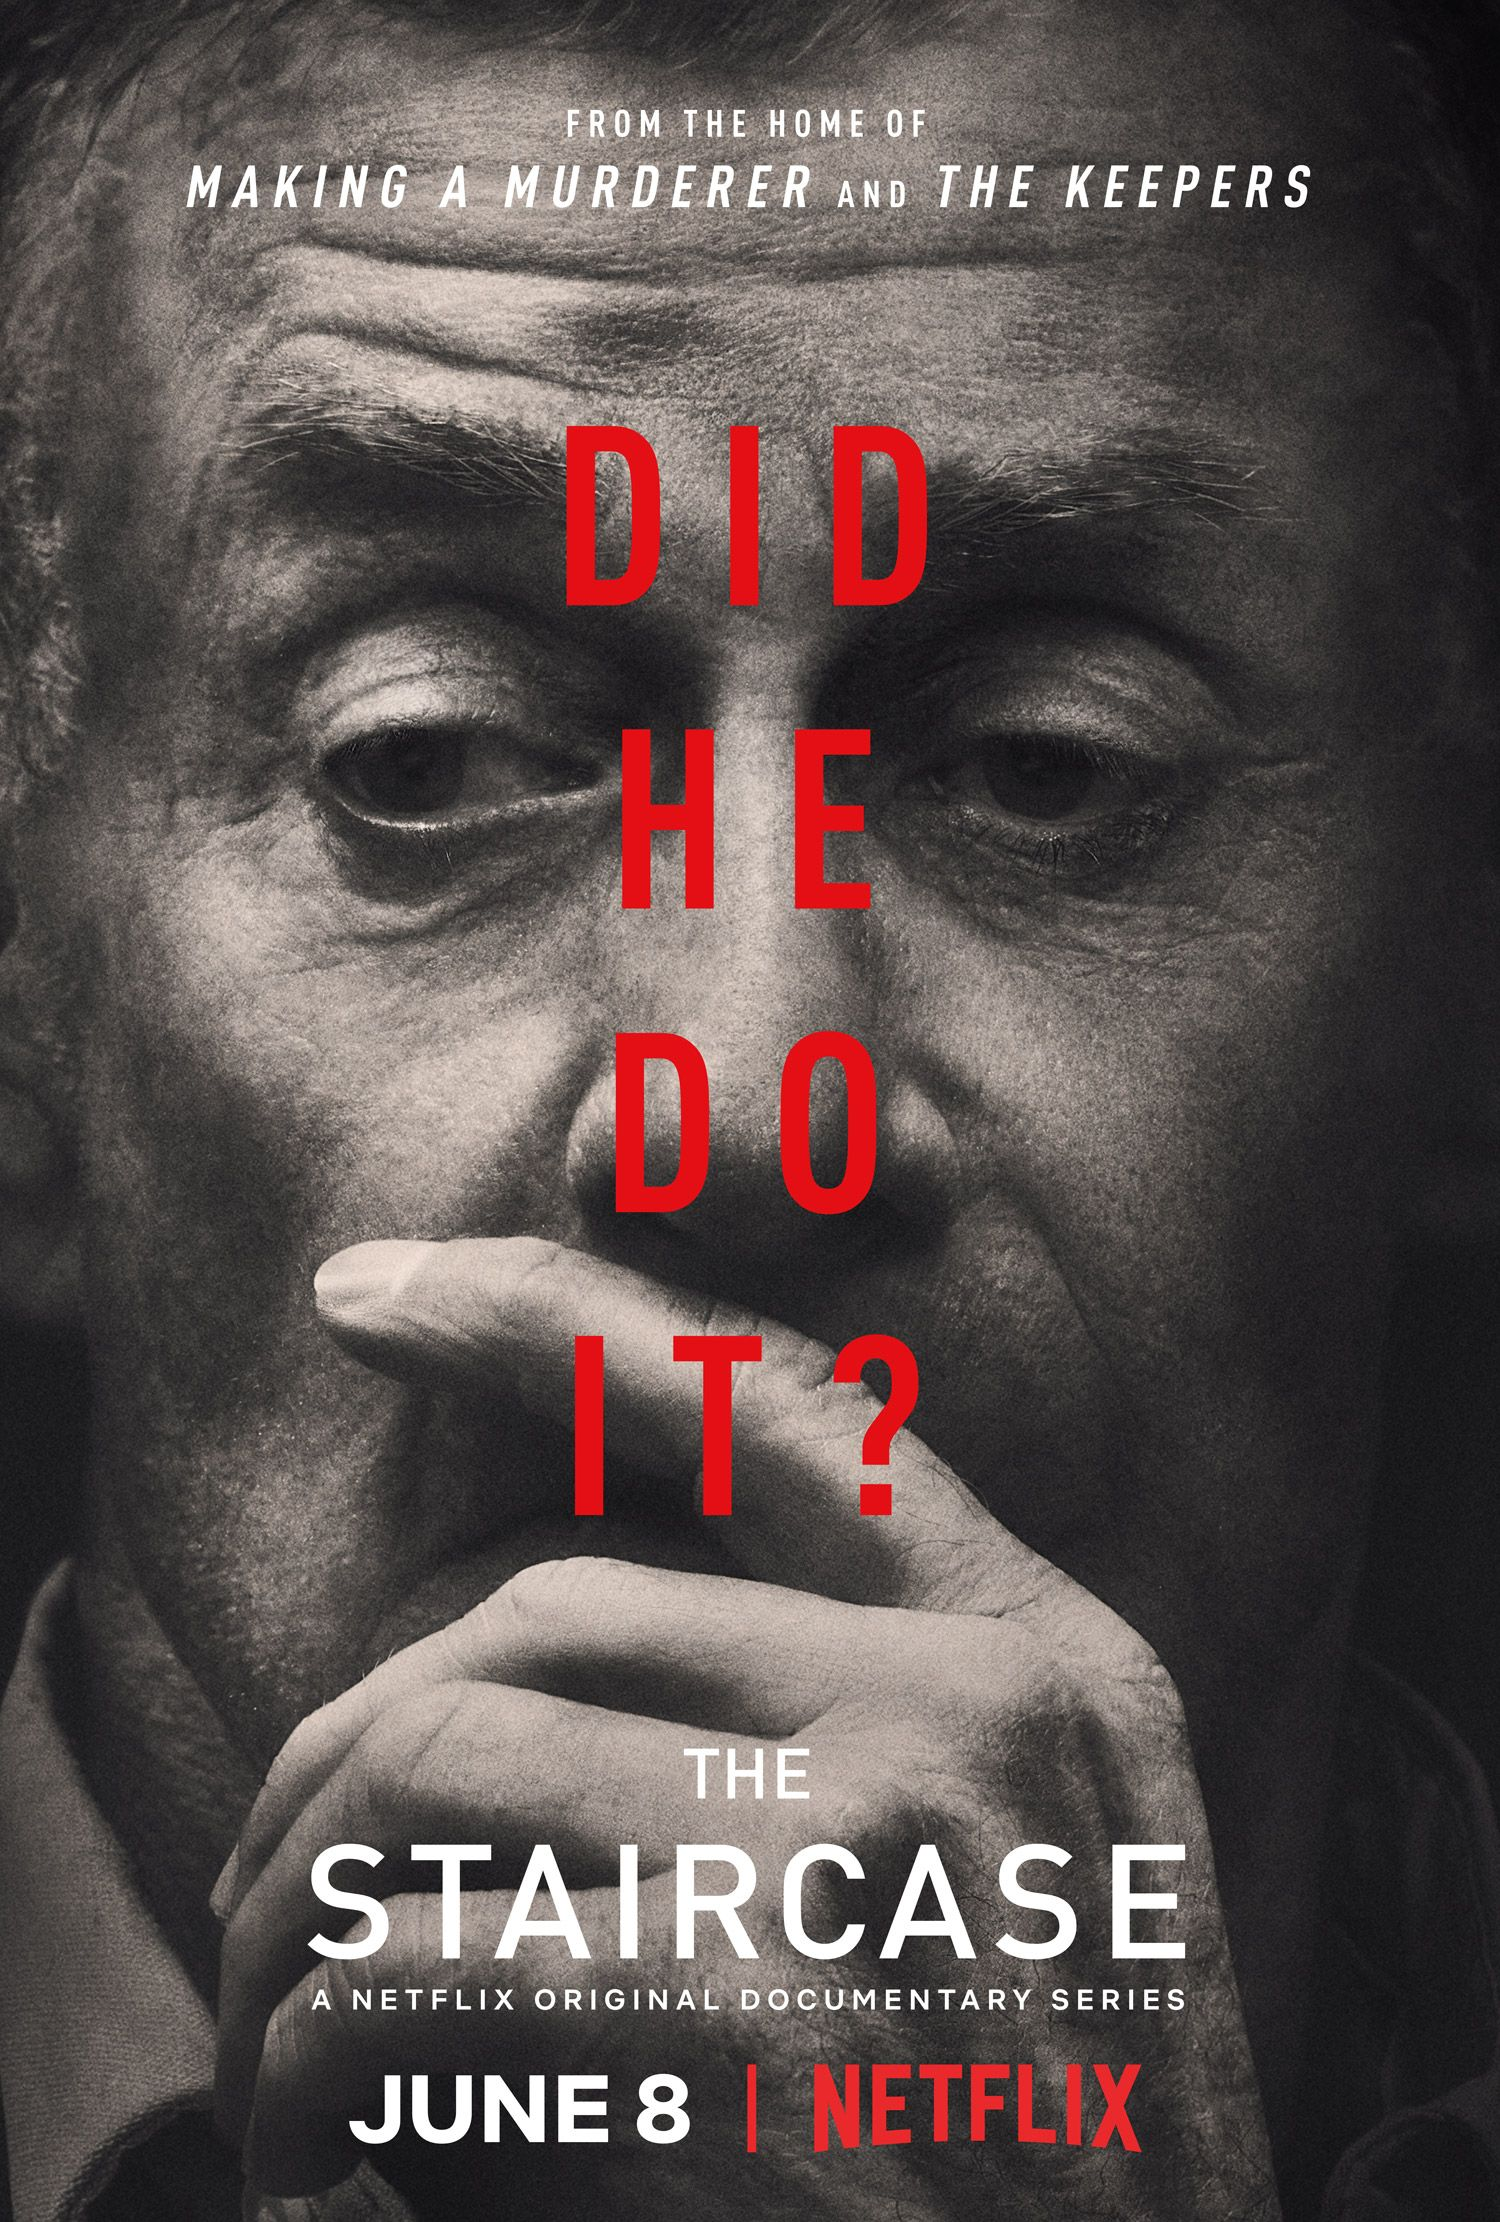 June 8th Netflix Premieres The Staircase Netflix Documentaries Documentaries Documentary Poster